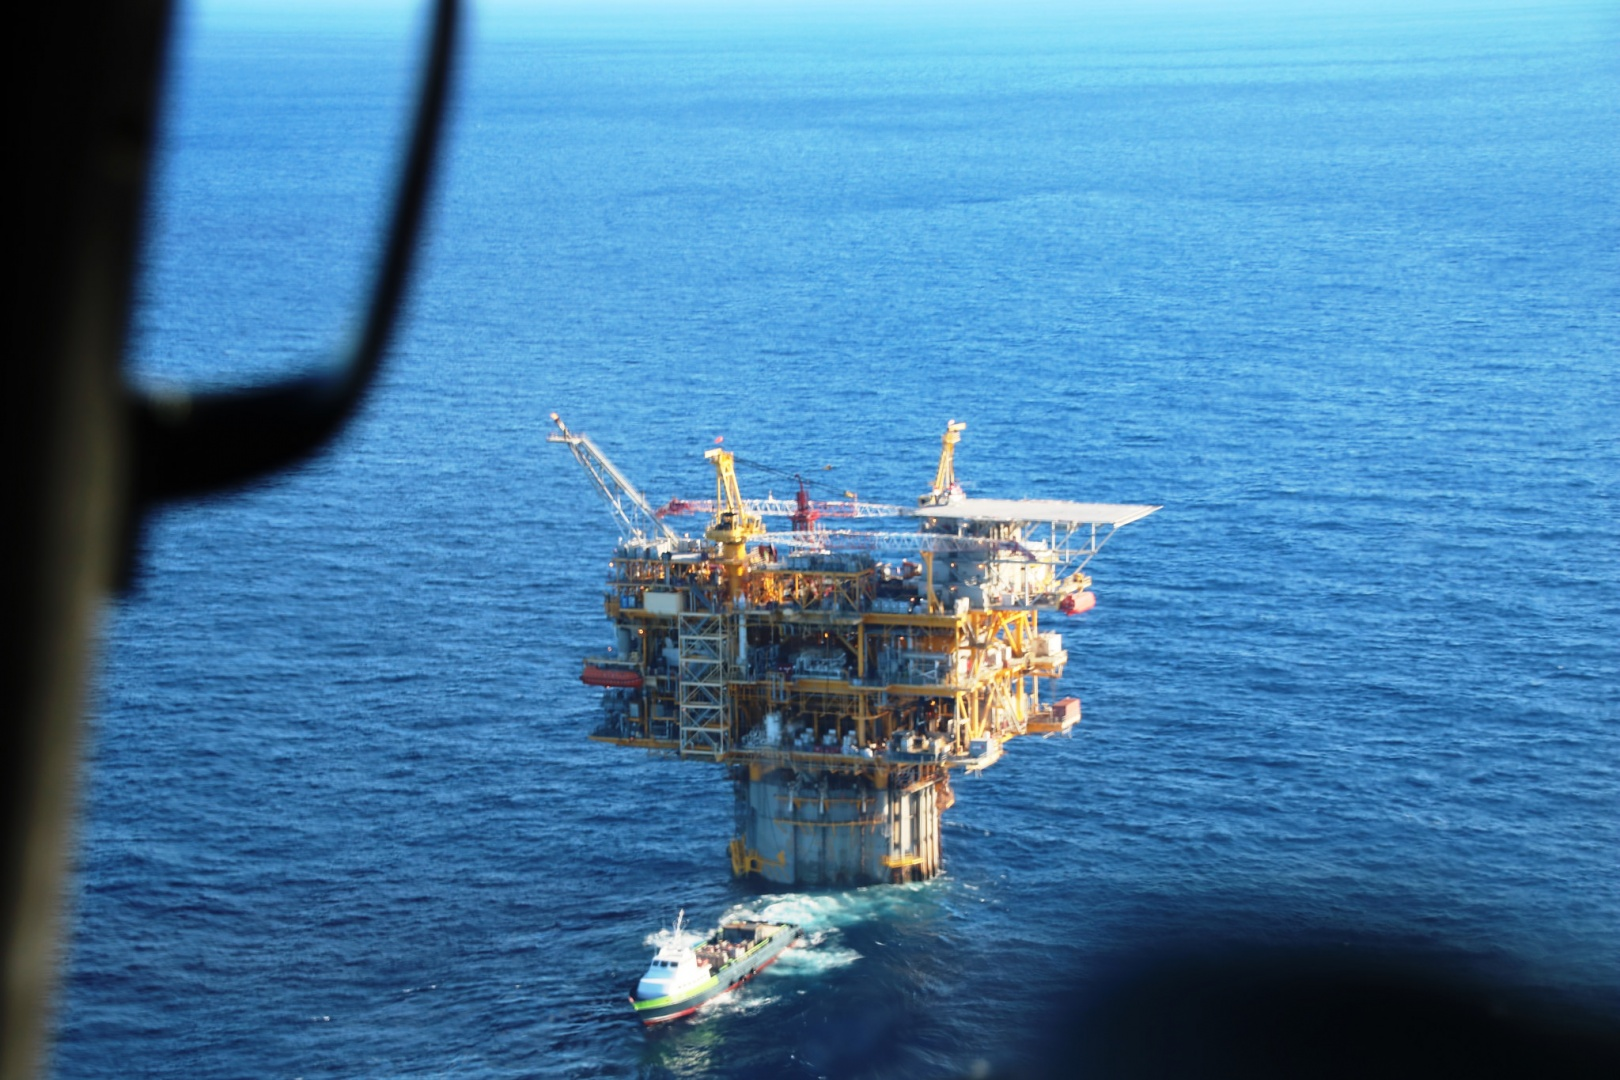 offshore oil and gas facilities Offshore oil and gas facilities - download as pdf file (pdf), text file (txt) or read online.